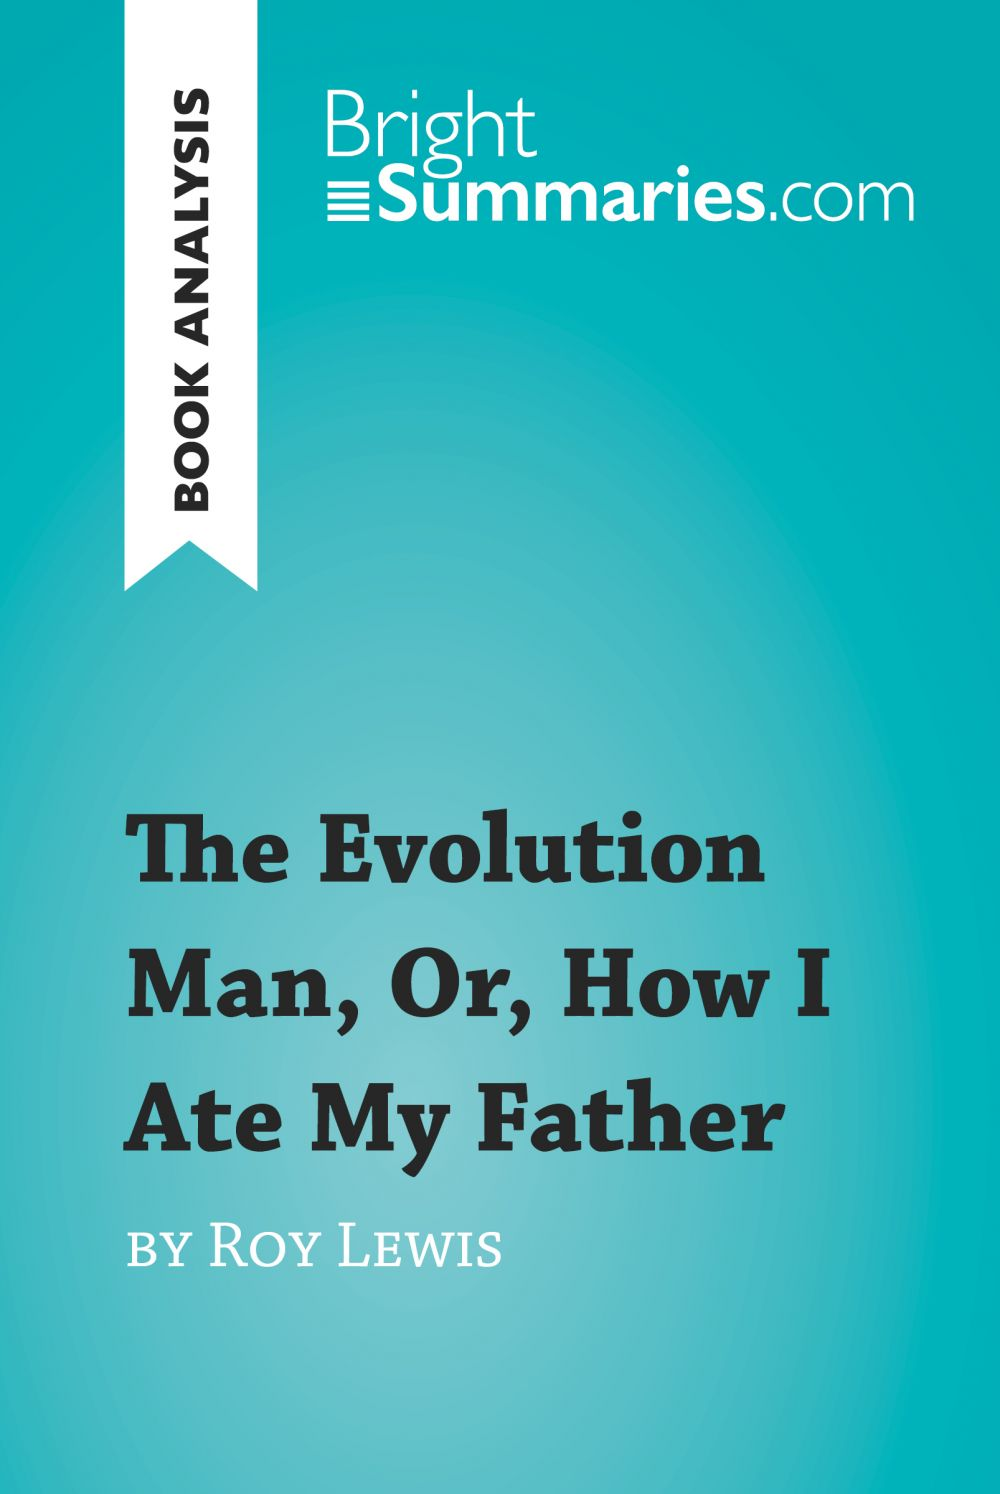 The Evolution Man, Or, How I Ate My Father by Roy Lewis (Book Analysis)